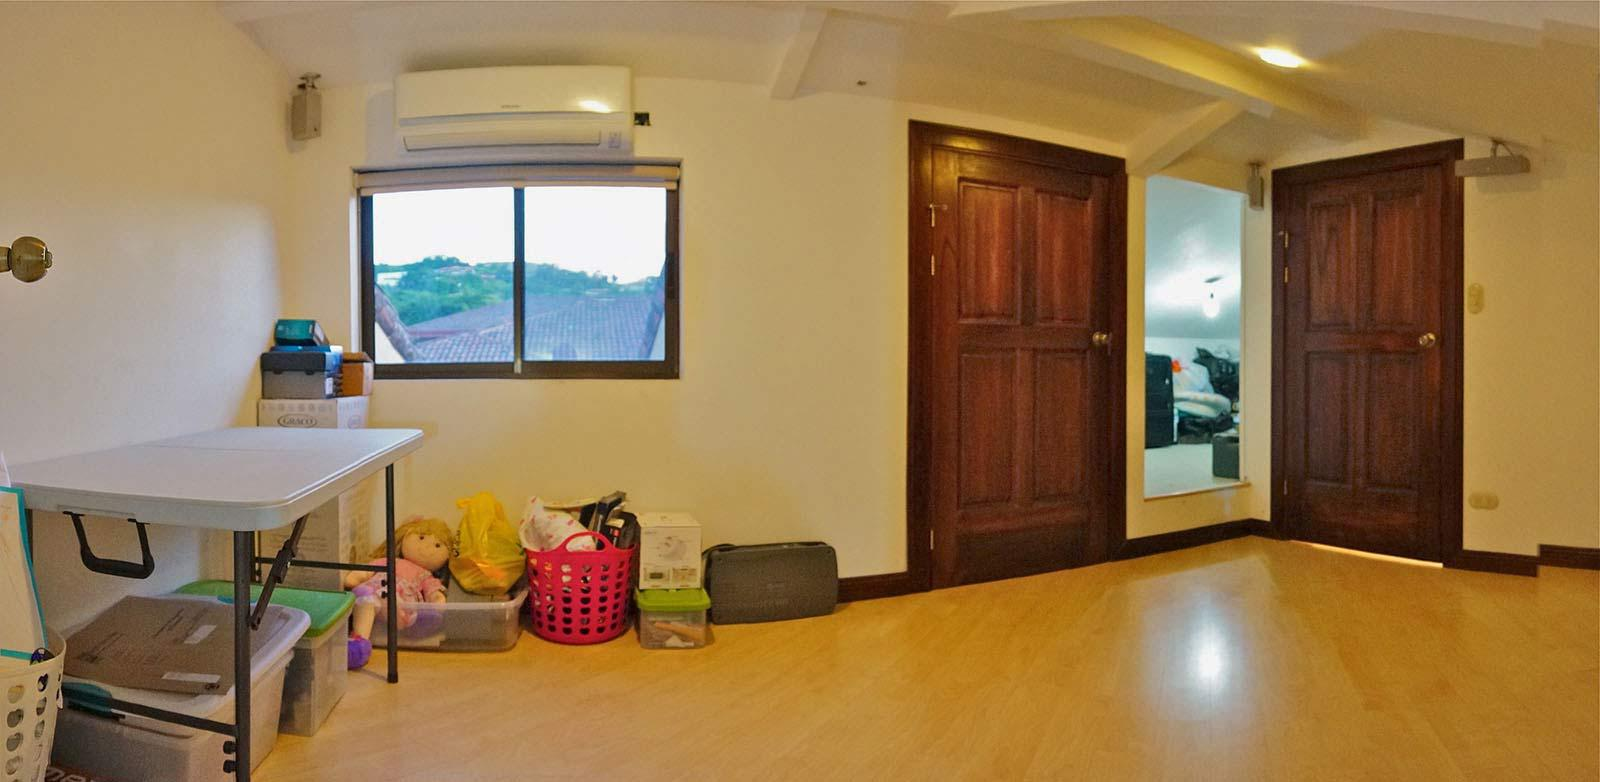 Escazu home for sale, homes, in condominium, gated community, 4 bedroom, backyard, swimming pool, tennis court, central location